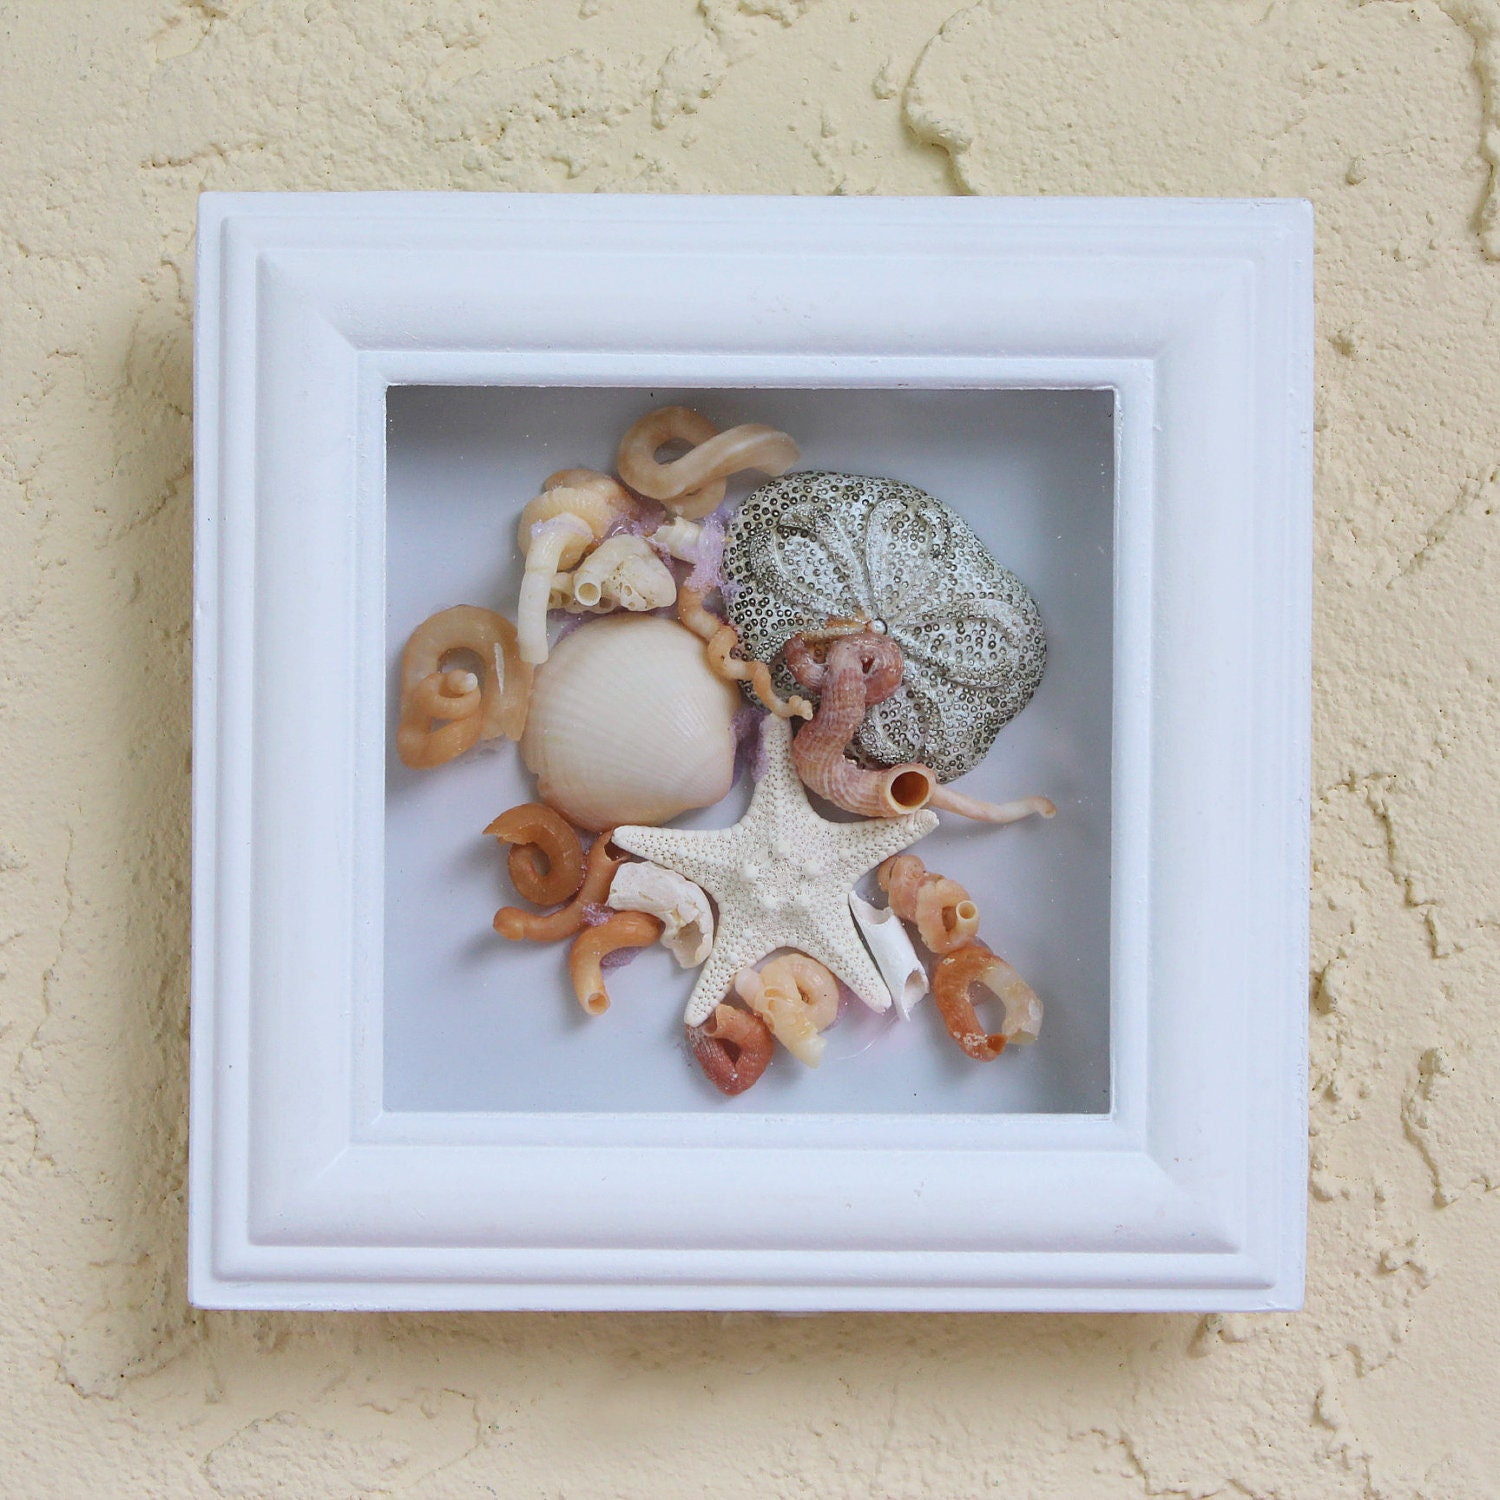 seashell beach decor starfish framed with glass by seastyle. Black Bedroom Furniture Sets. Home Design Ideas